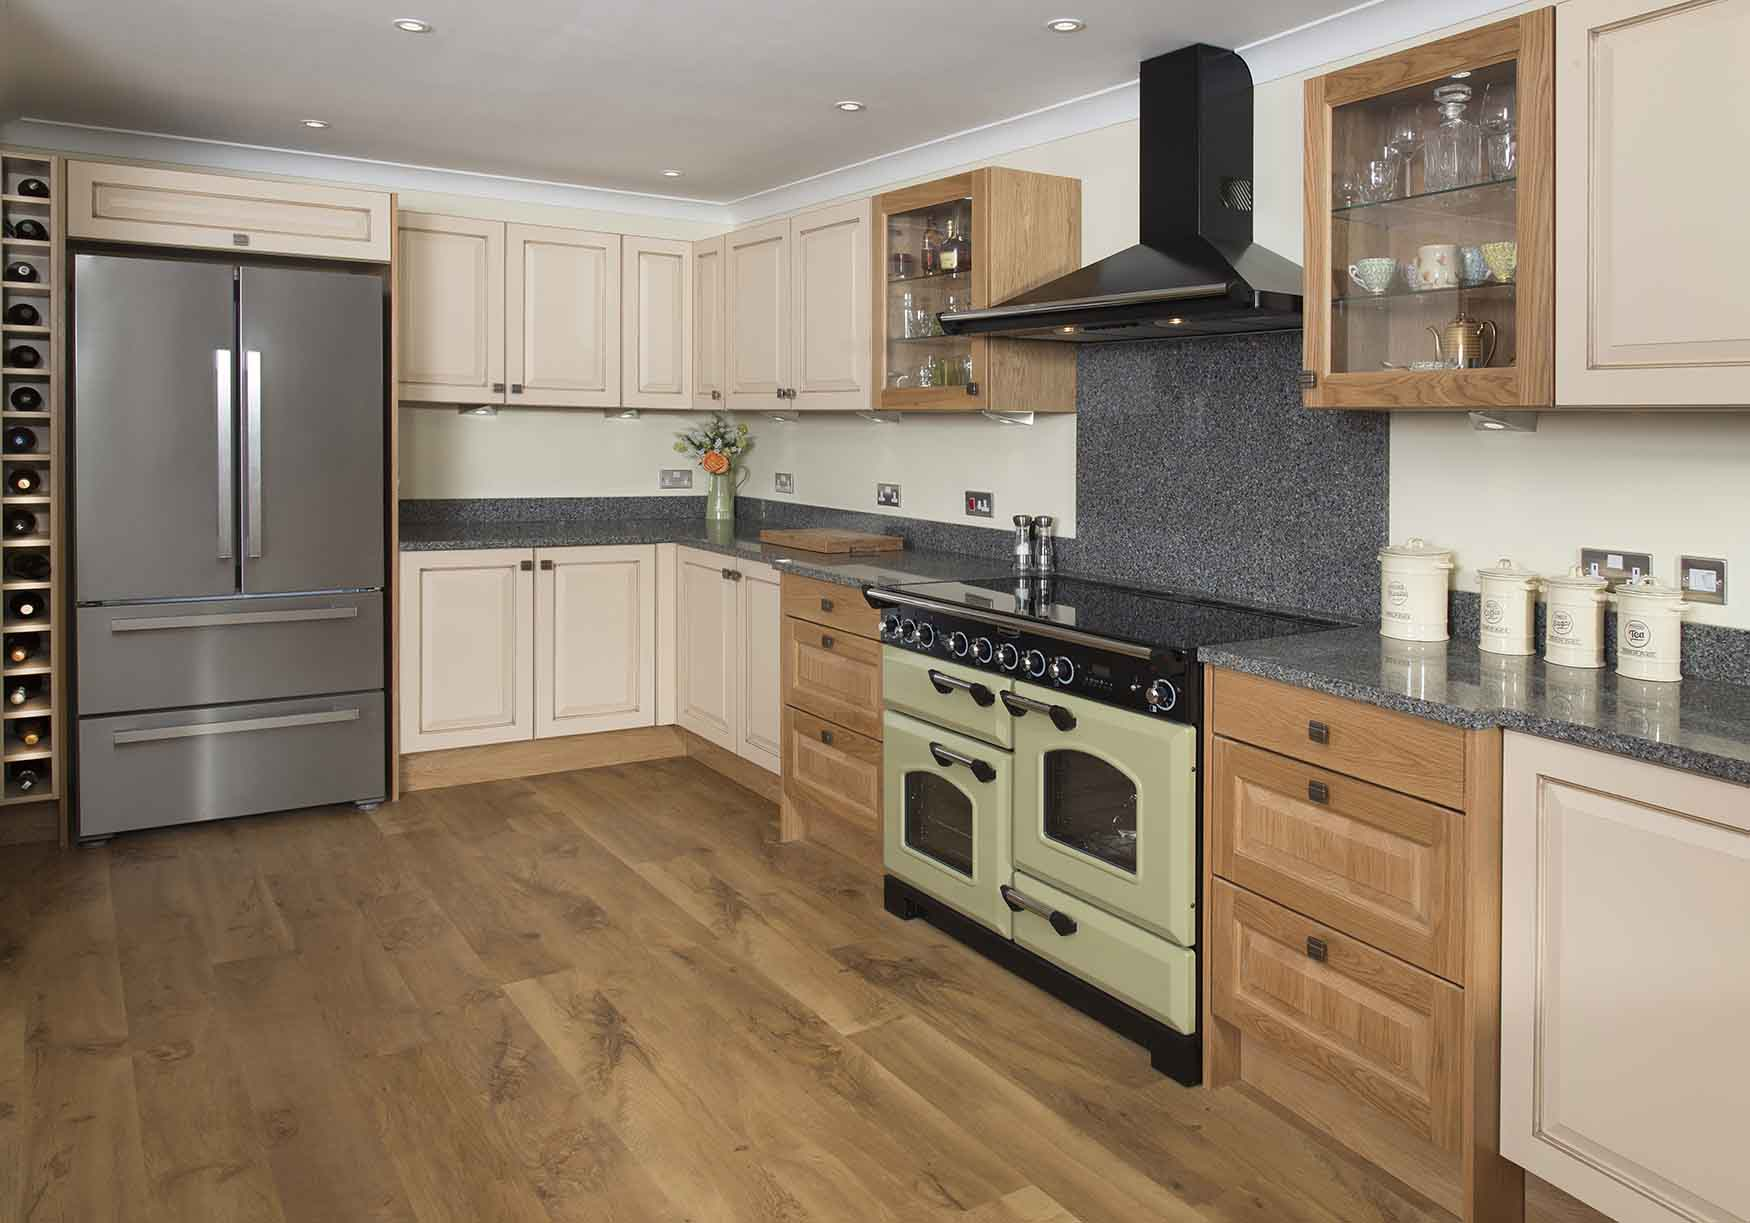 New kitchens kidderminster worcestershire for Kitchenette cabinets